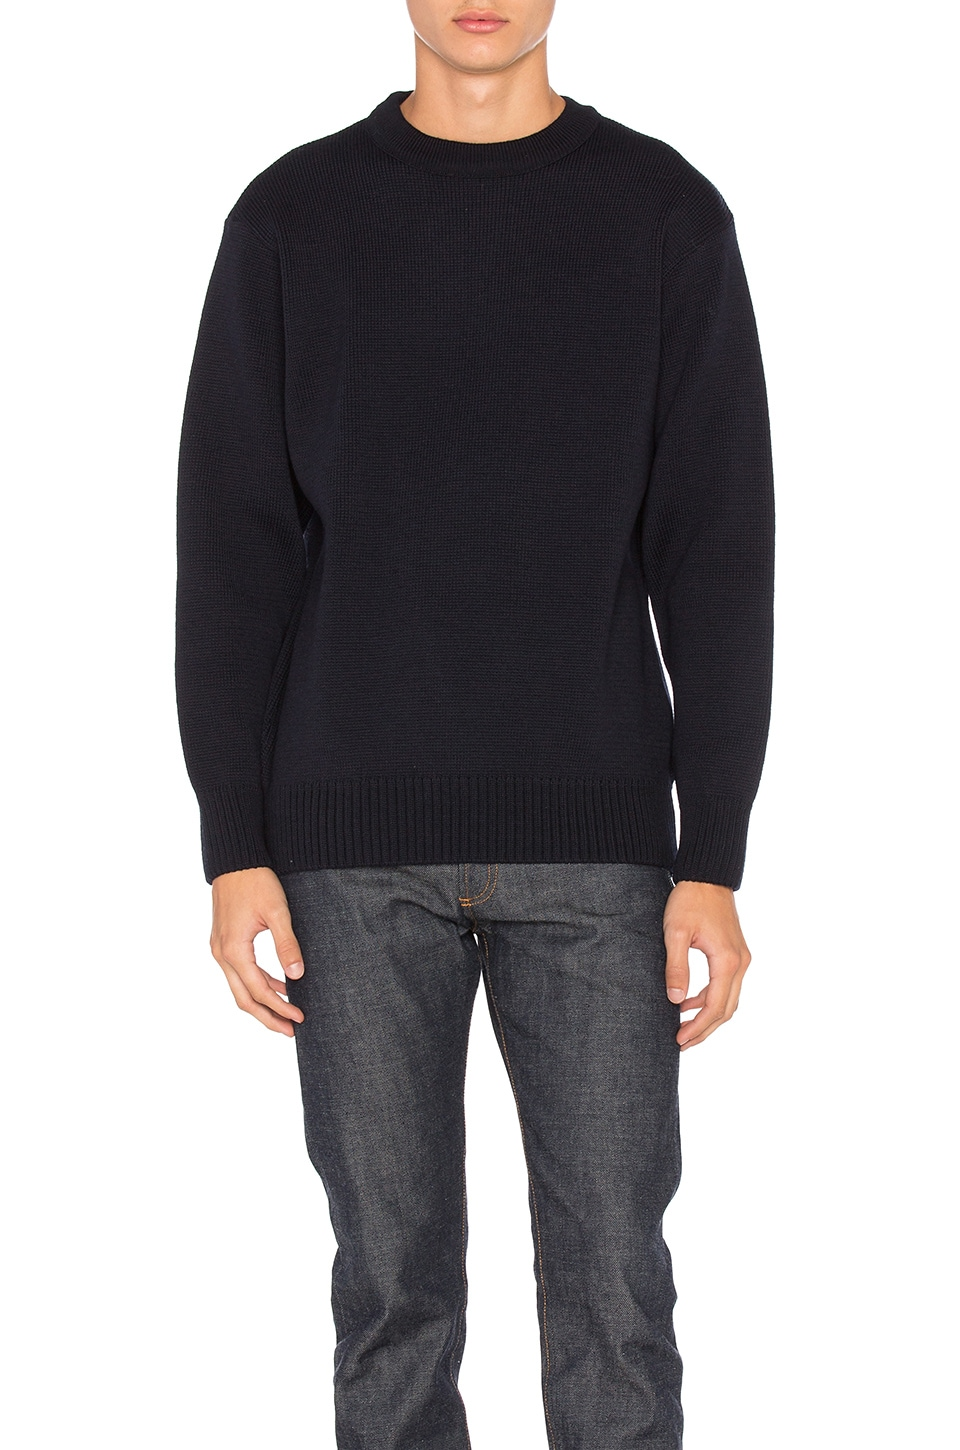 Crewneck Guide Sweater by Filson